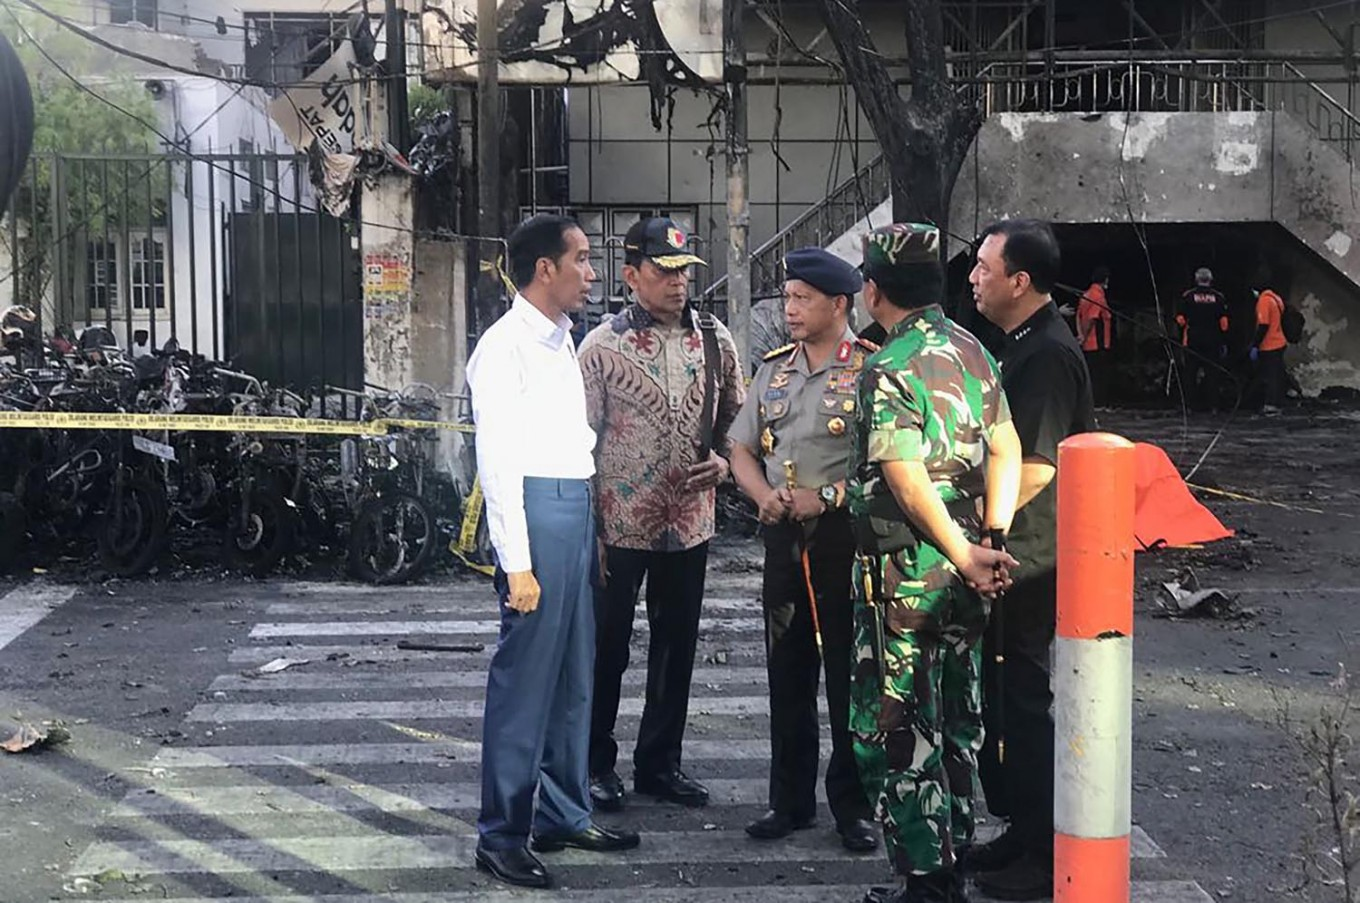 BREAKING: Another bomb explosion reported in Sidoarjo, East Java